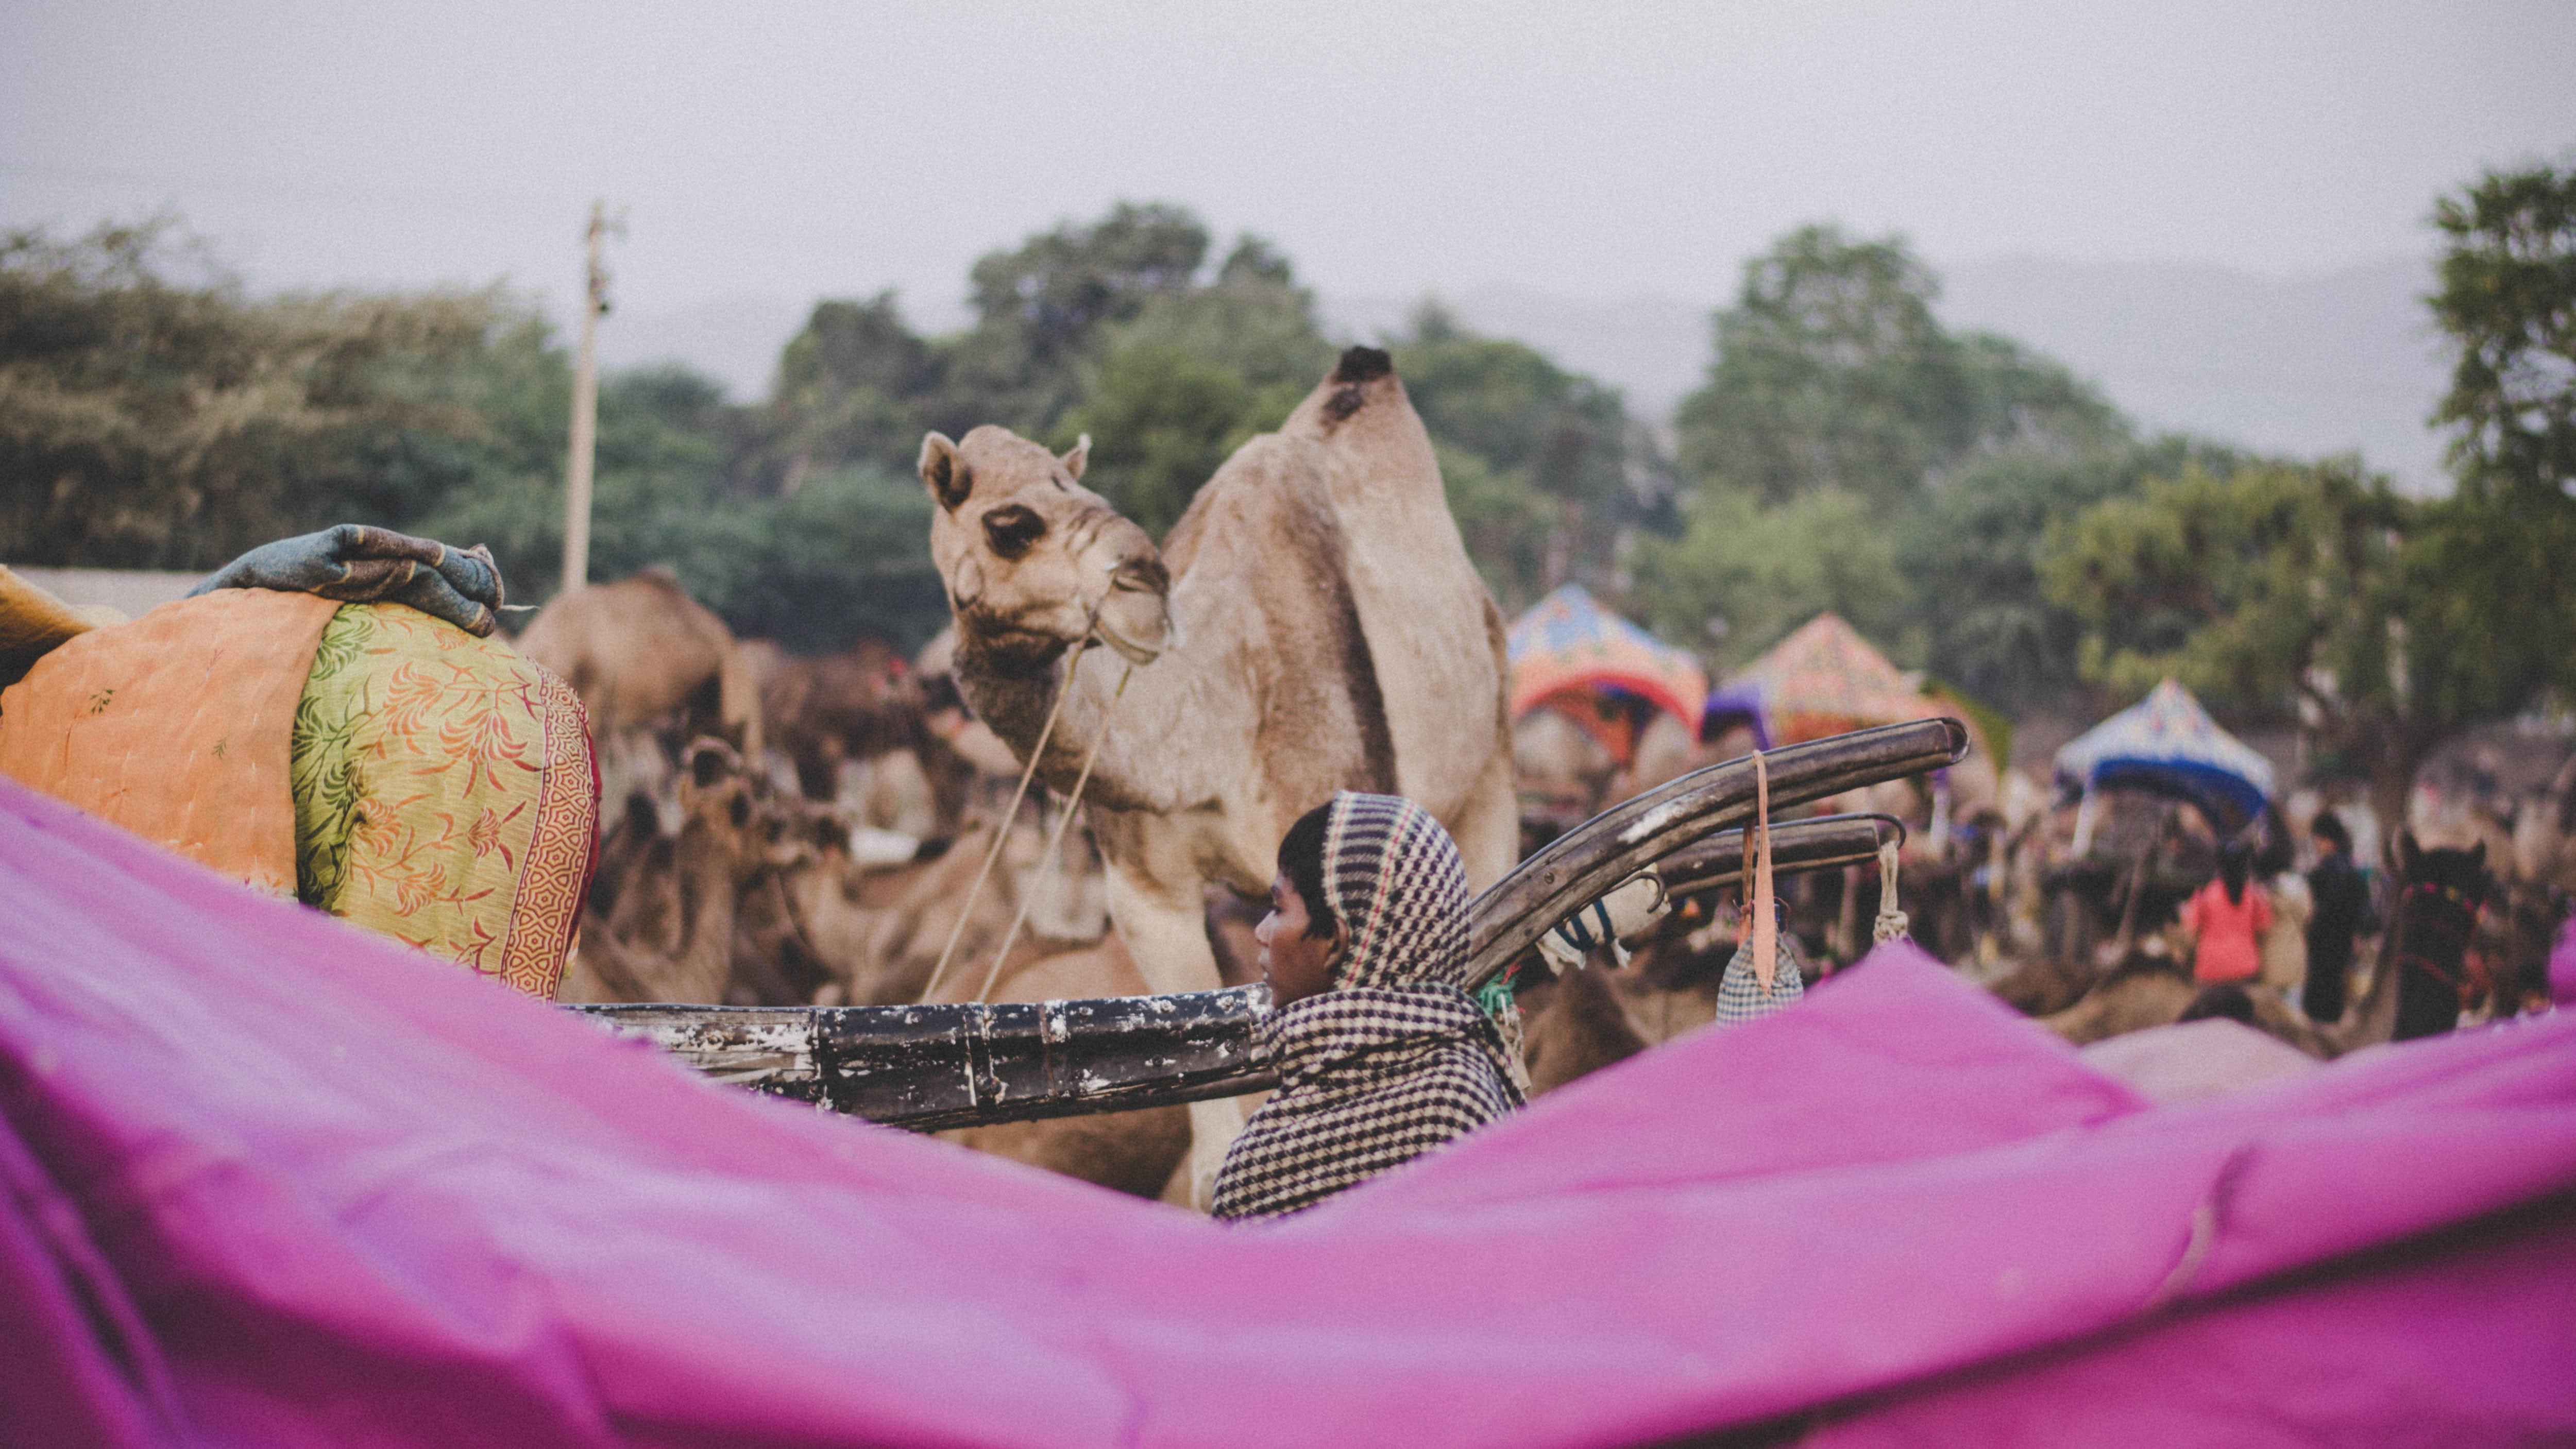 camel in front of person